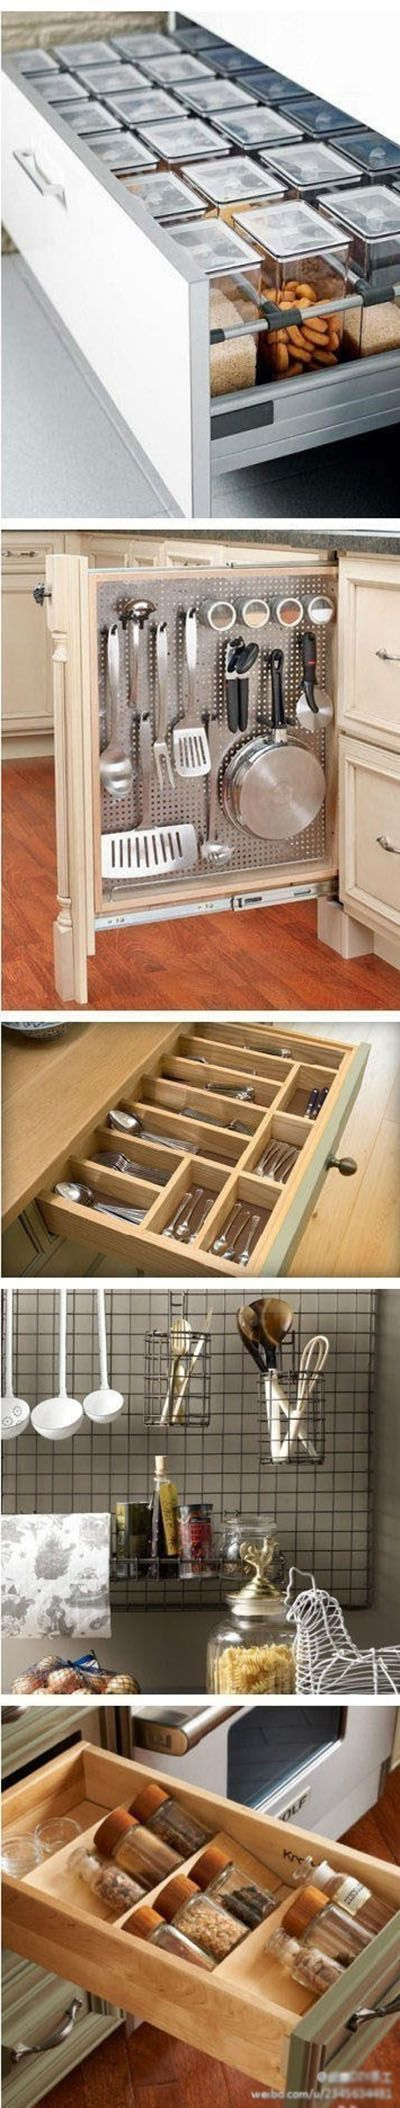 Great Decor Ideas | DIY & Crafts Tutorials | AAA | Pinterest | Küche ...